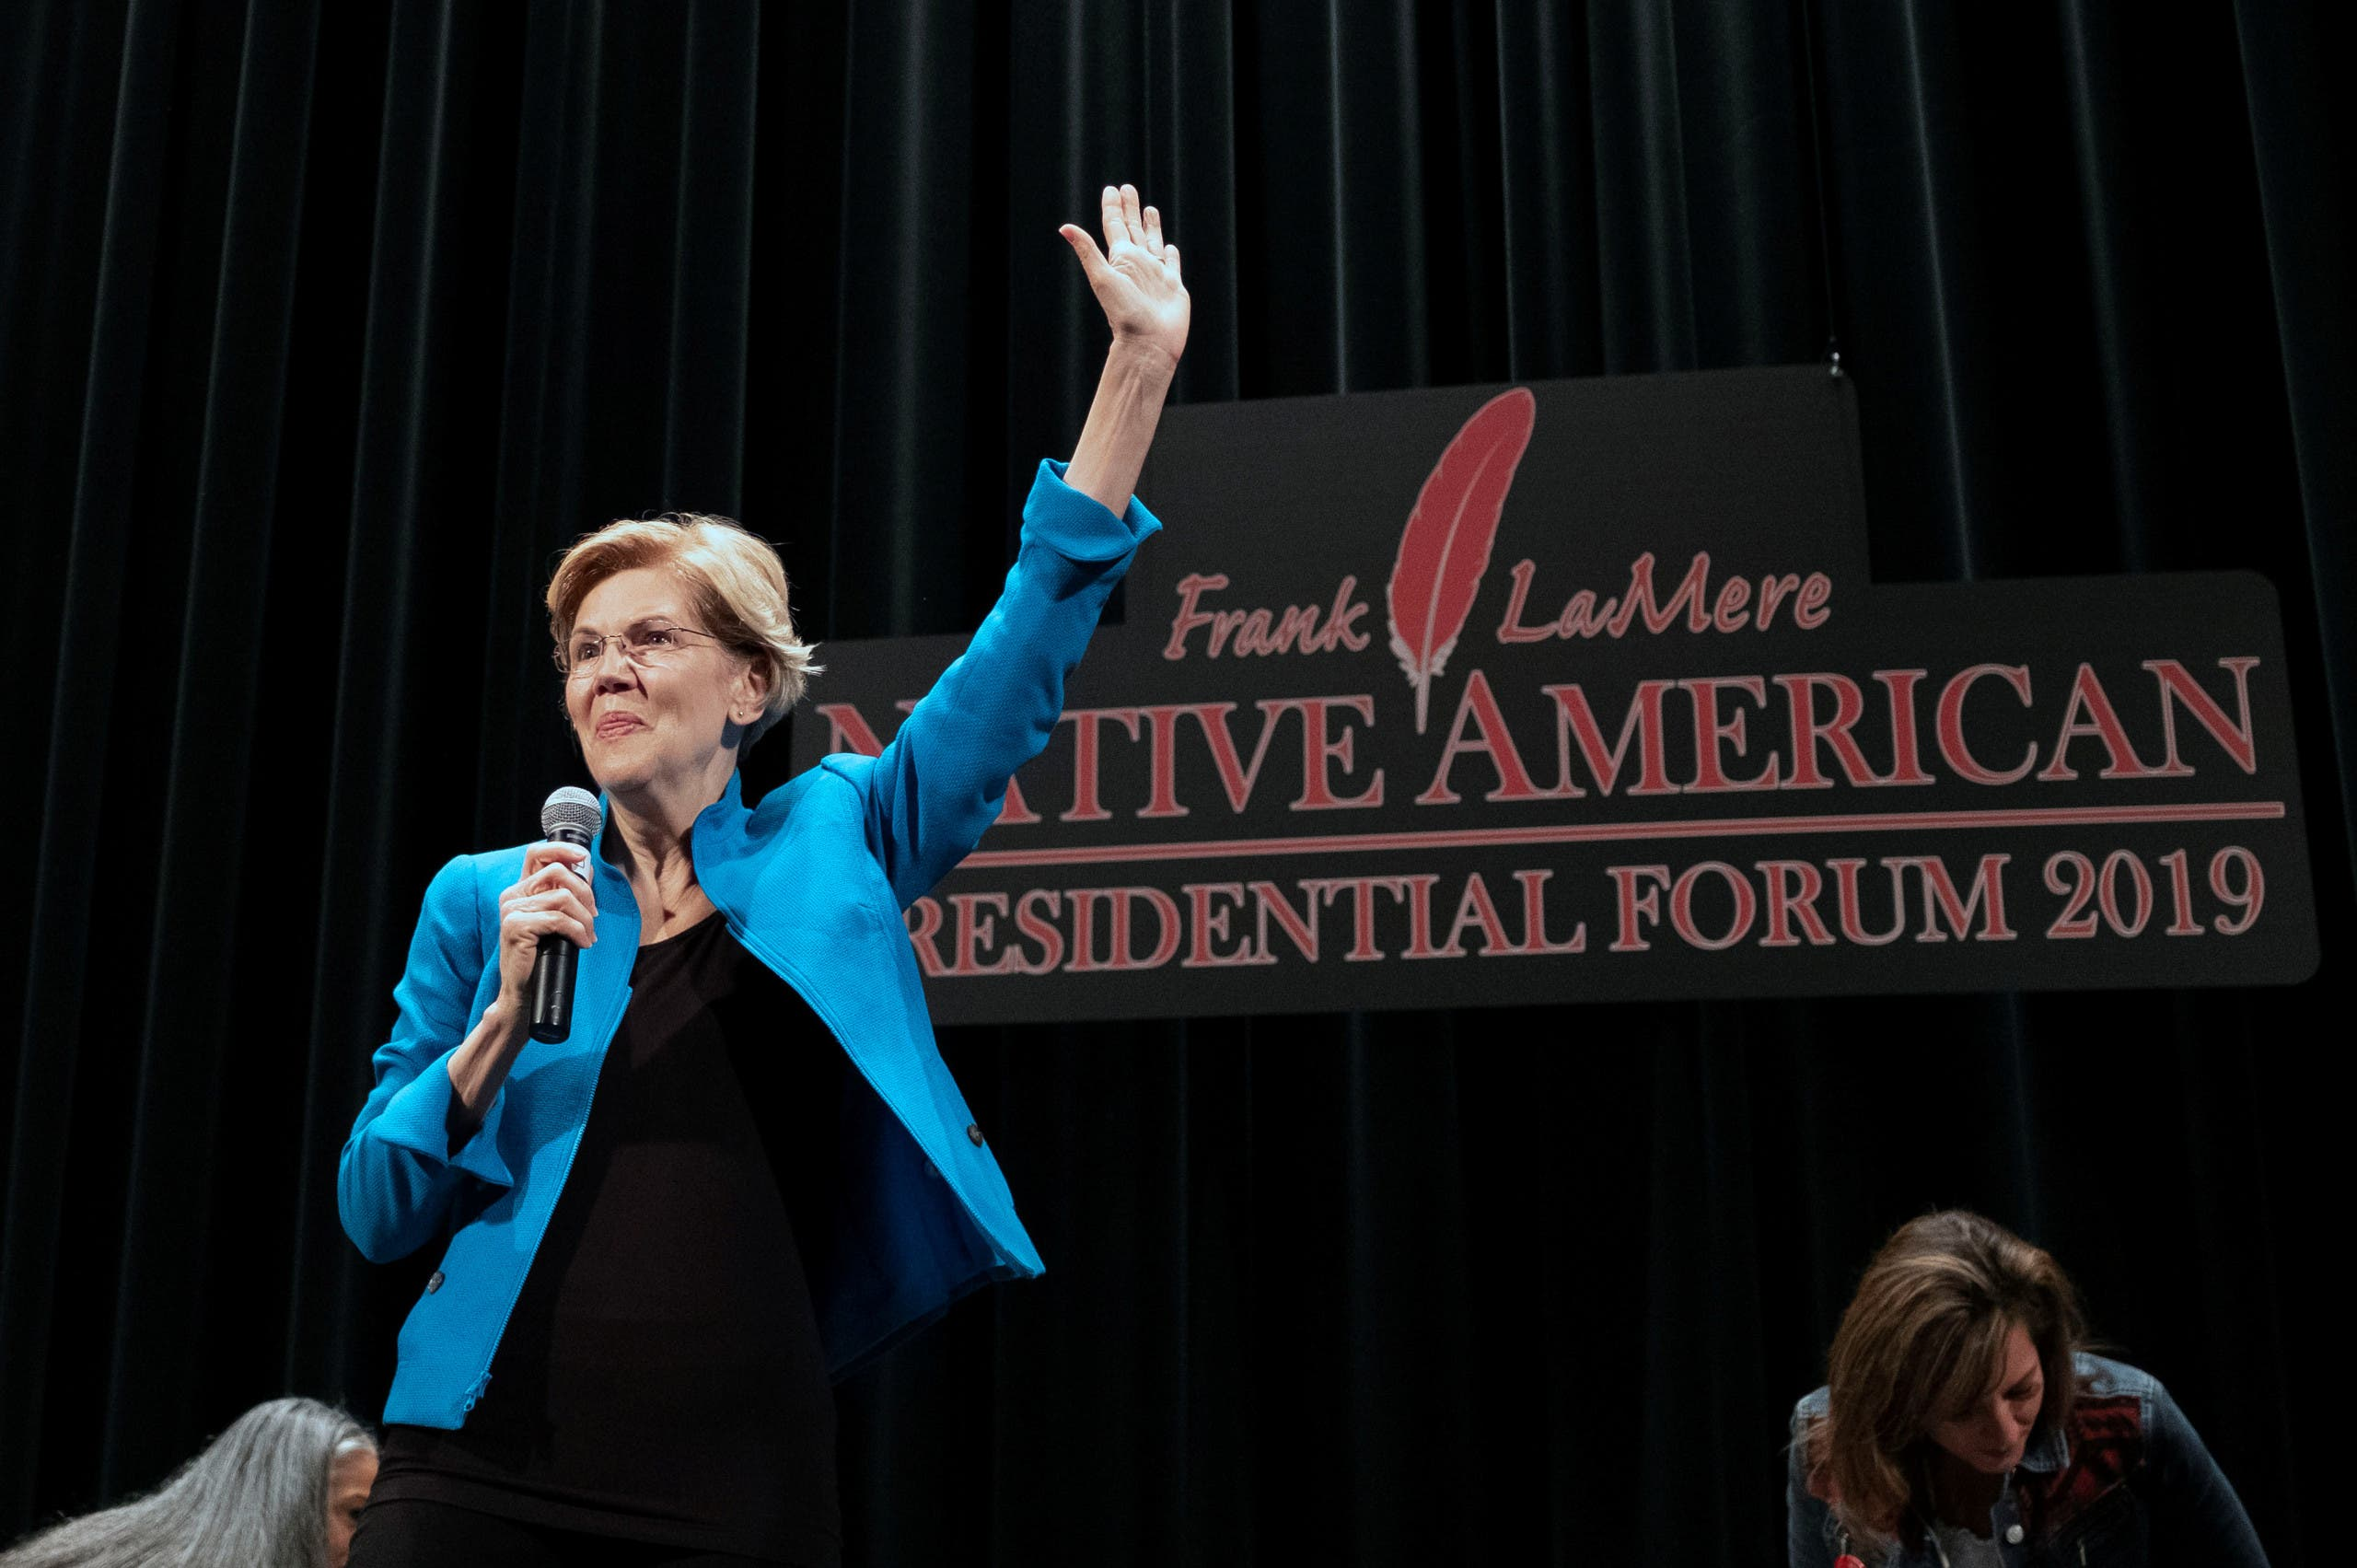 Democratic presidential candidate Elizabeth Warren waves as she arrives to the Frank LaMere Native American Forum in Iowa on August 19, 2019. (Reuters)